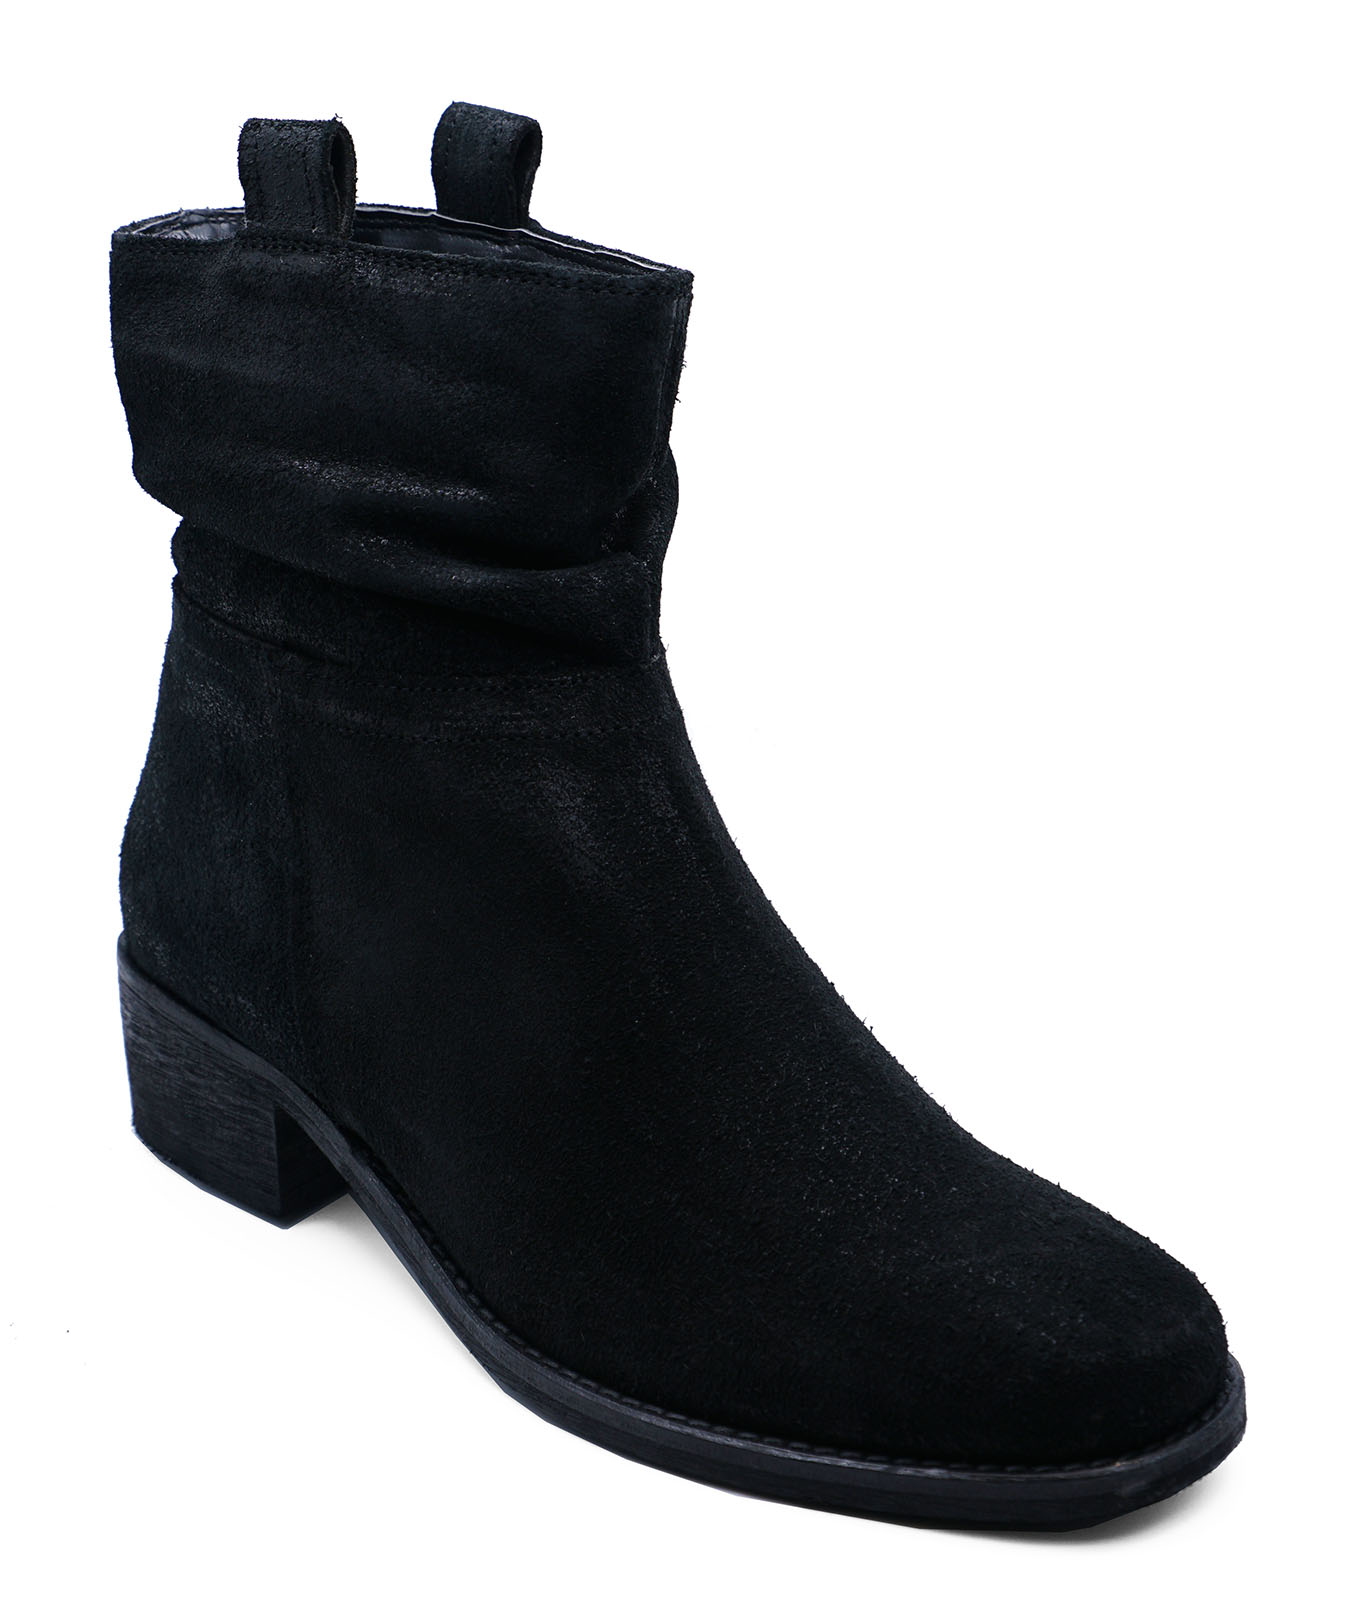 thumbnail 7 - LADIES-GENUINE-LEATHER-BLACK-ZIP-UP-ANKLE-CALF-SLOUCH-BOOTS-COMFY-SHOES-UK-2-9